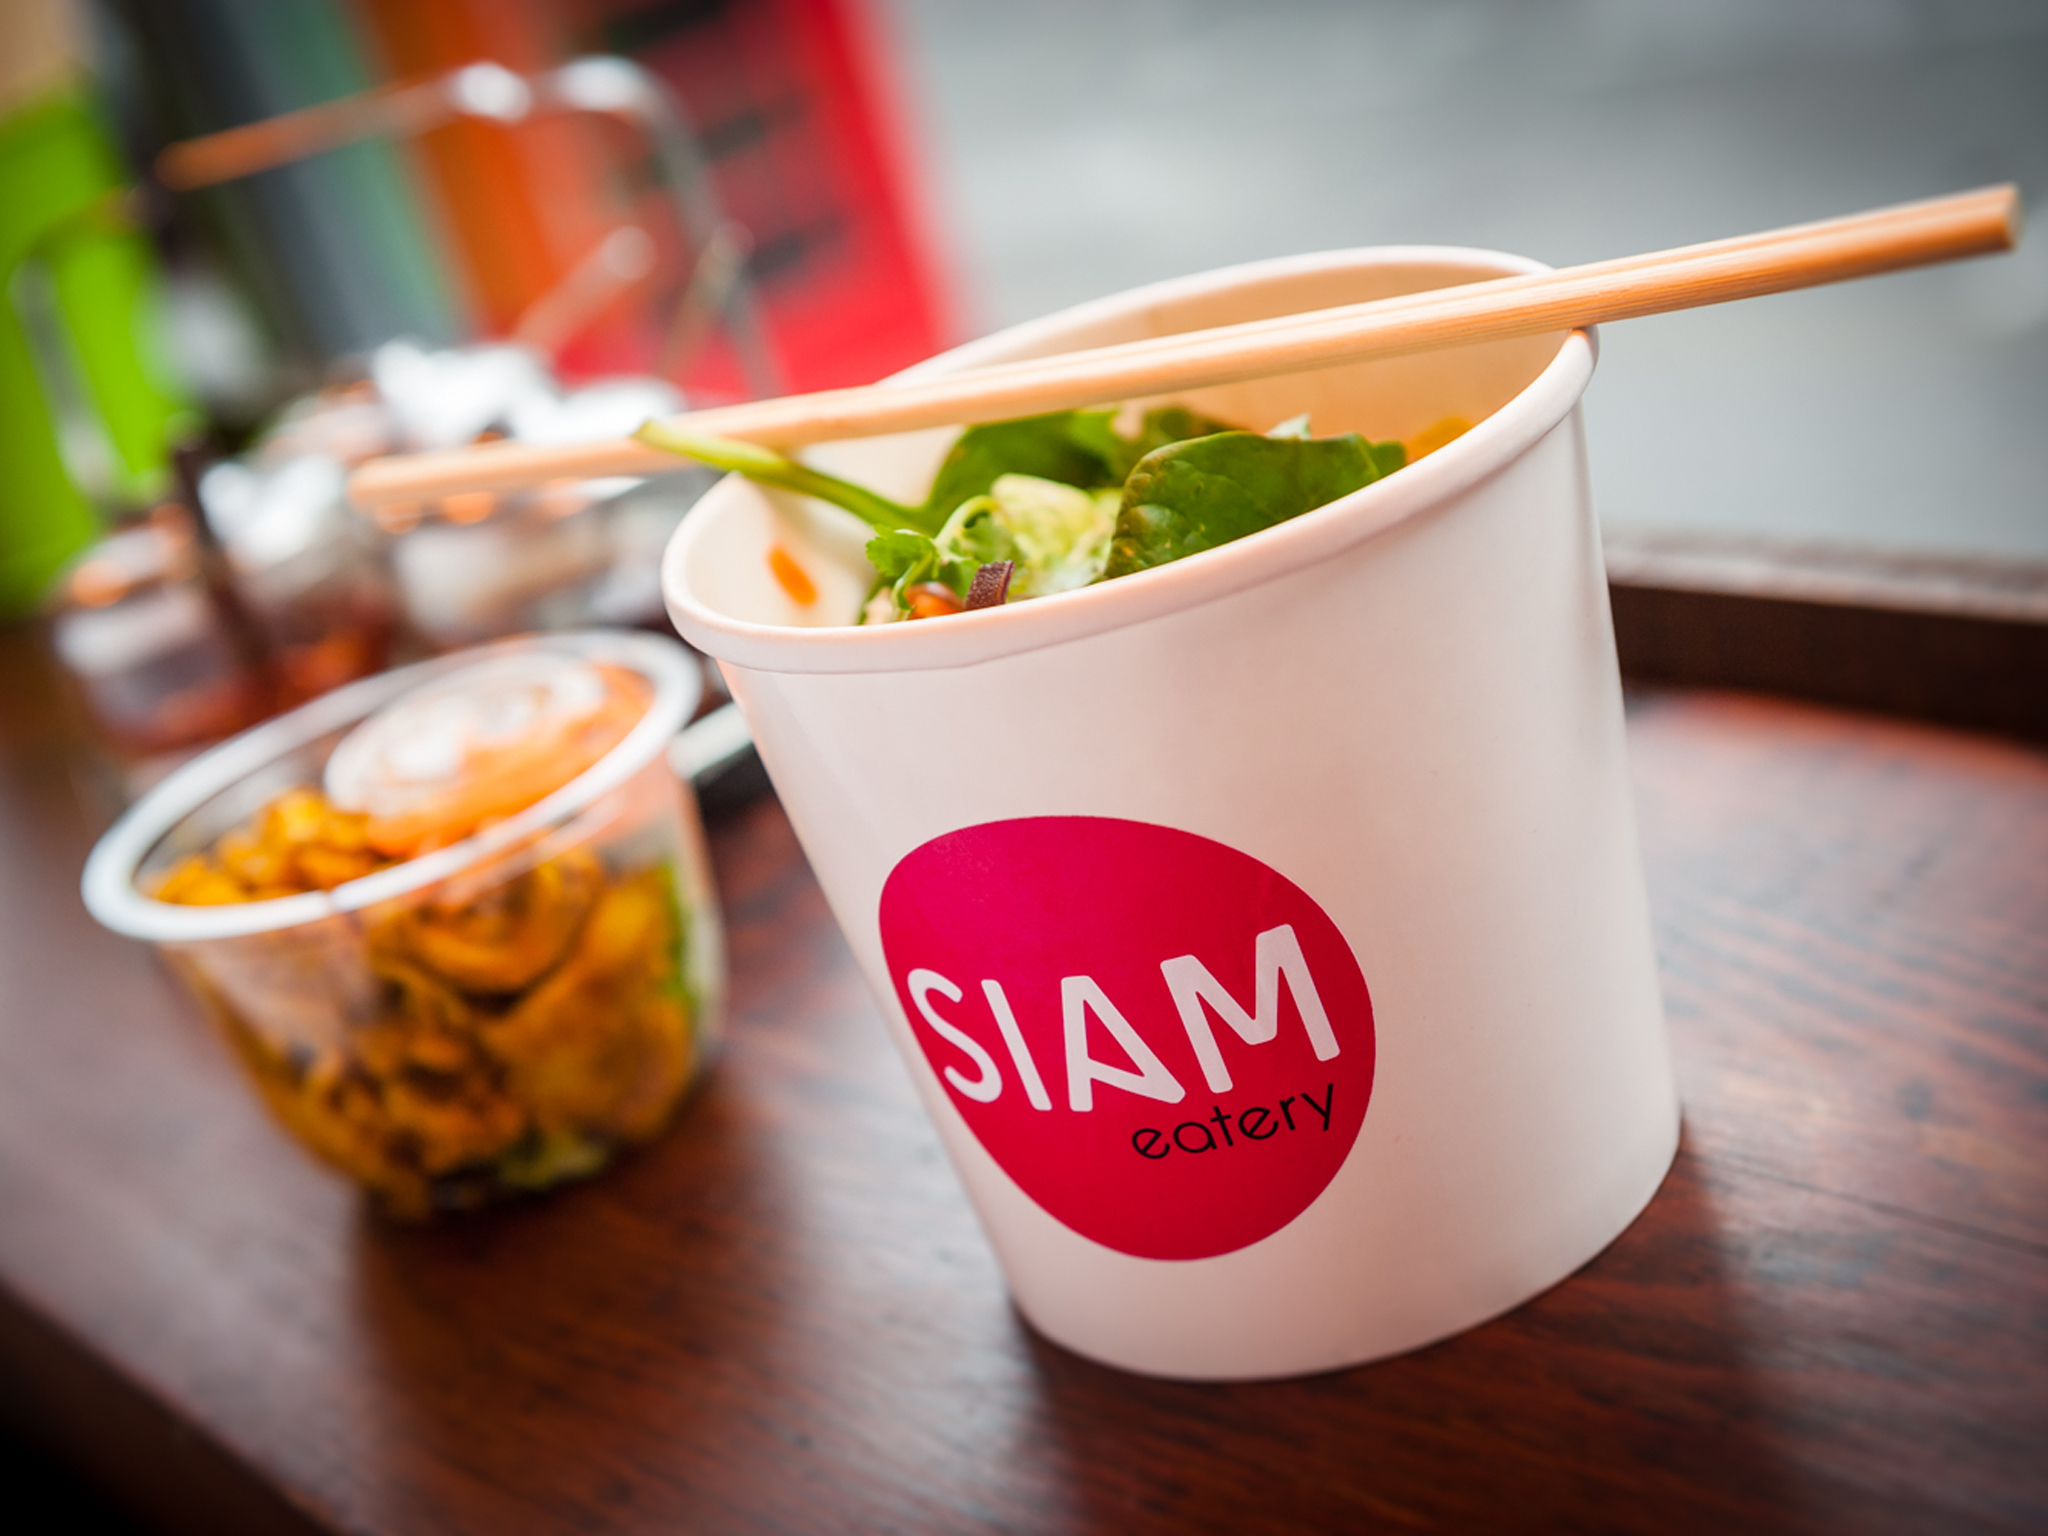 The 100 best cheap eats in London, Siam Eatery